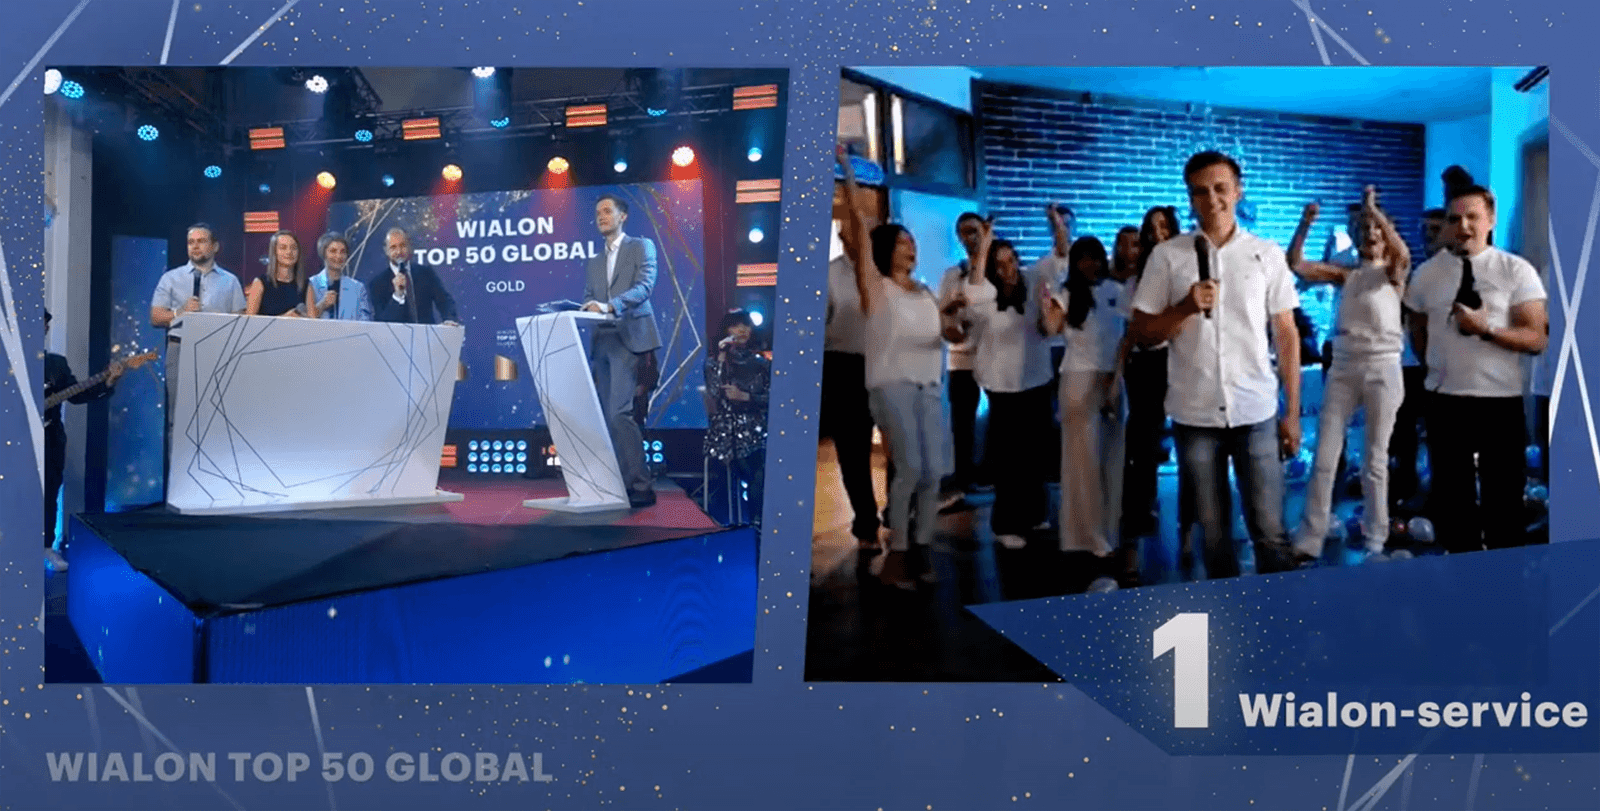 Wialon Top 50 Global ceremony